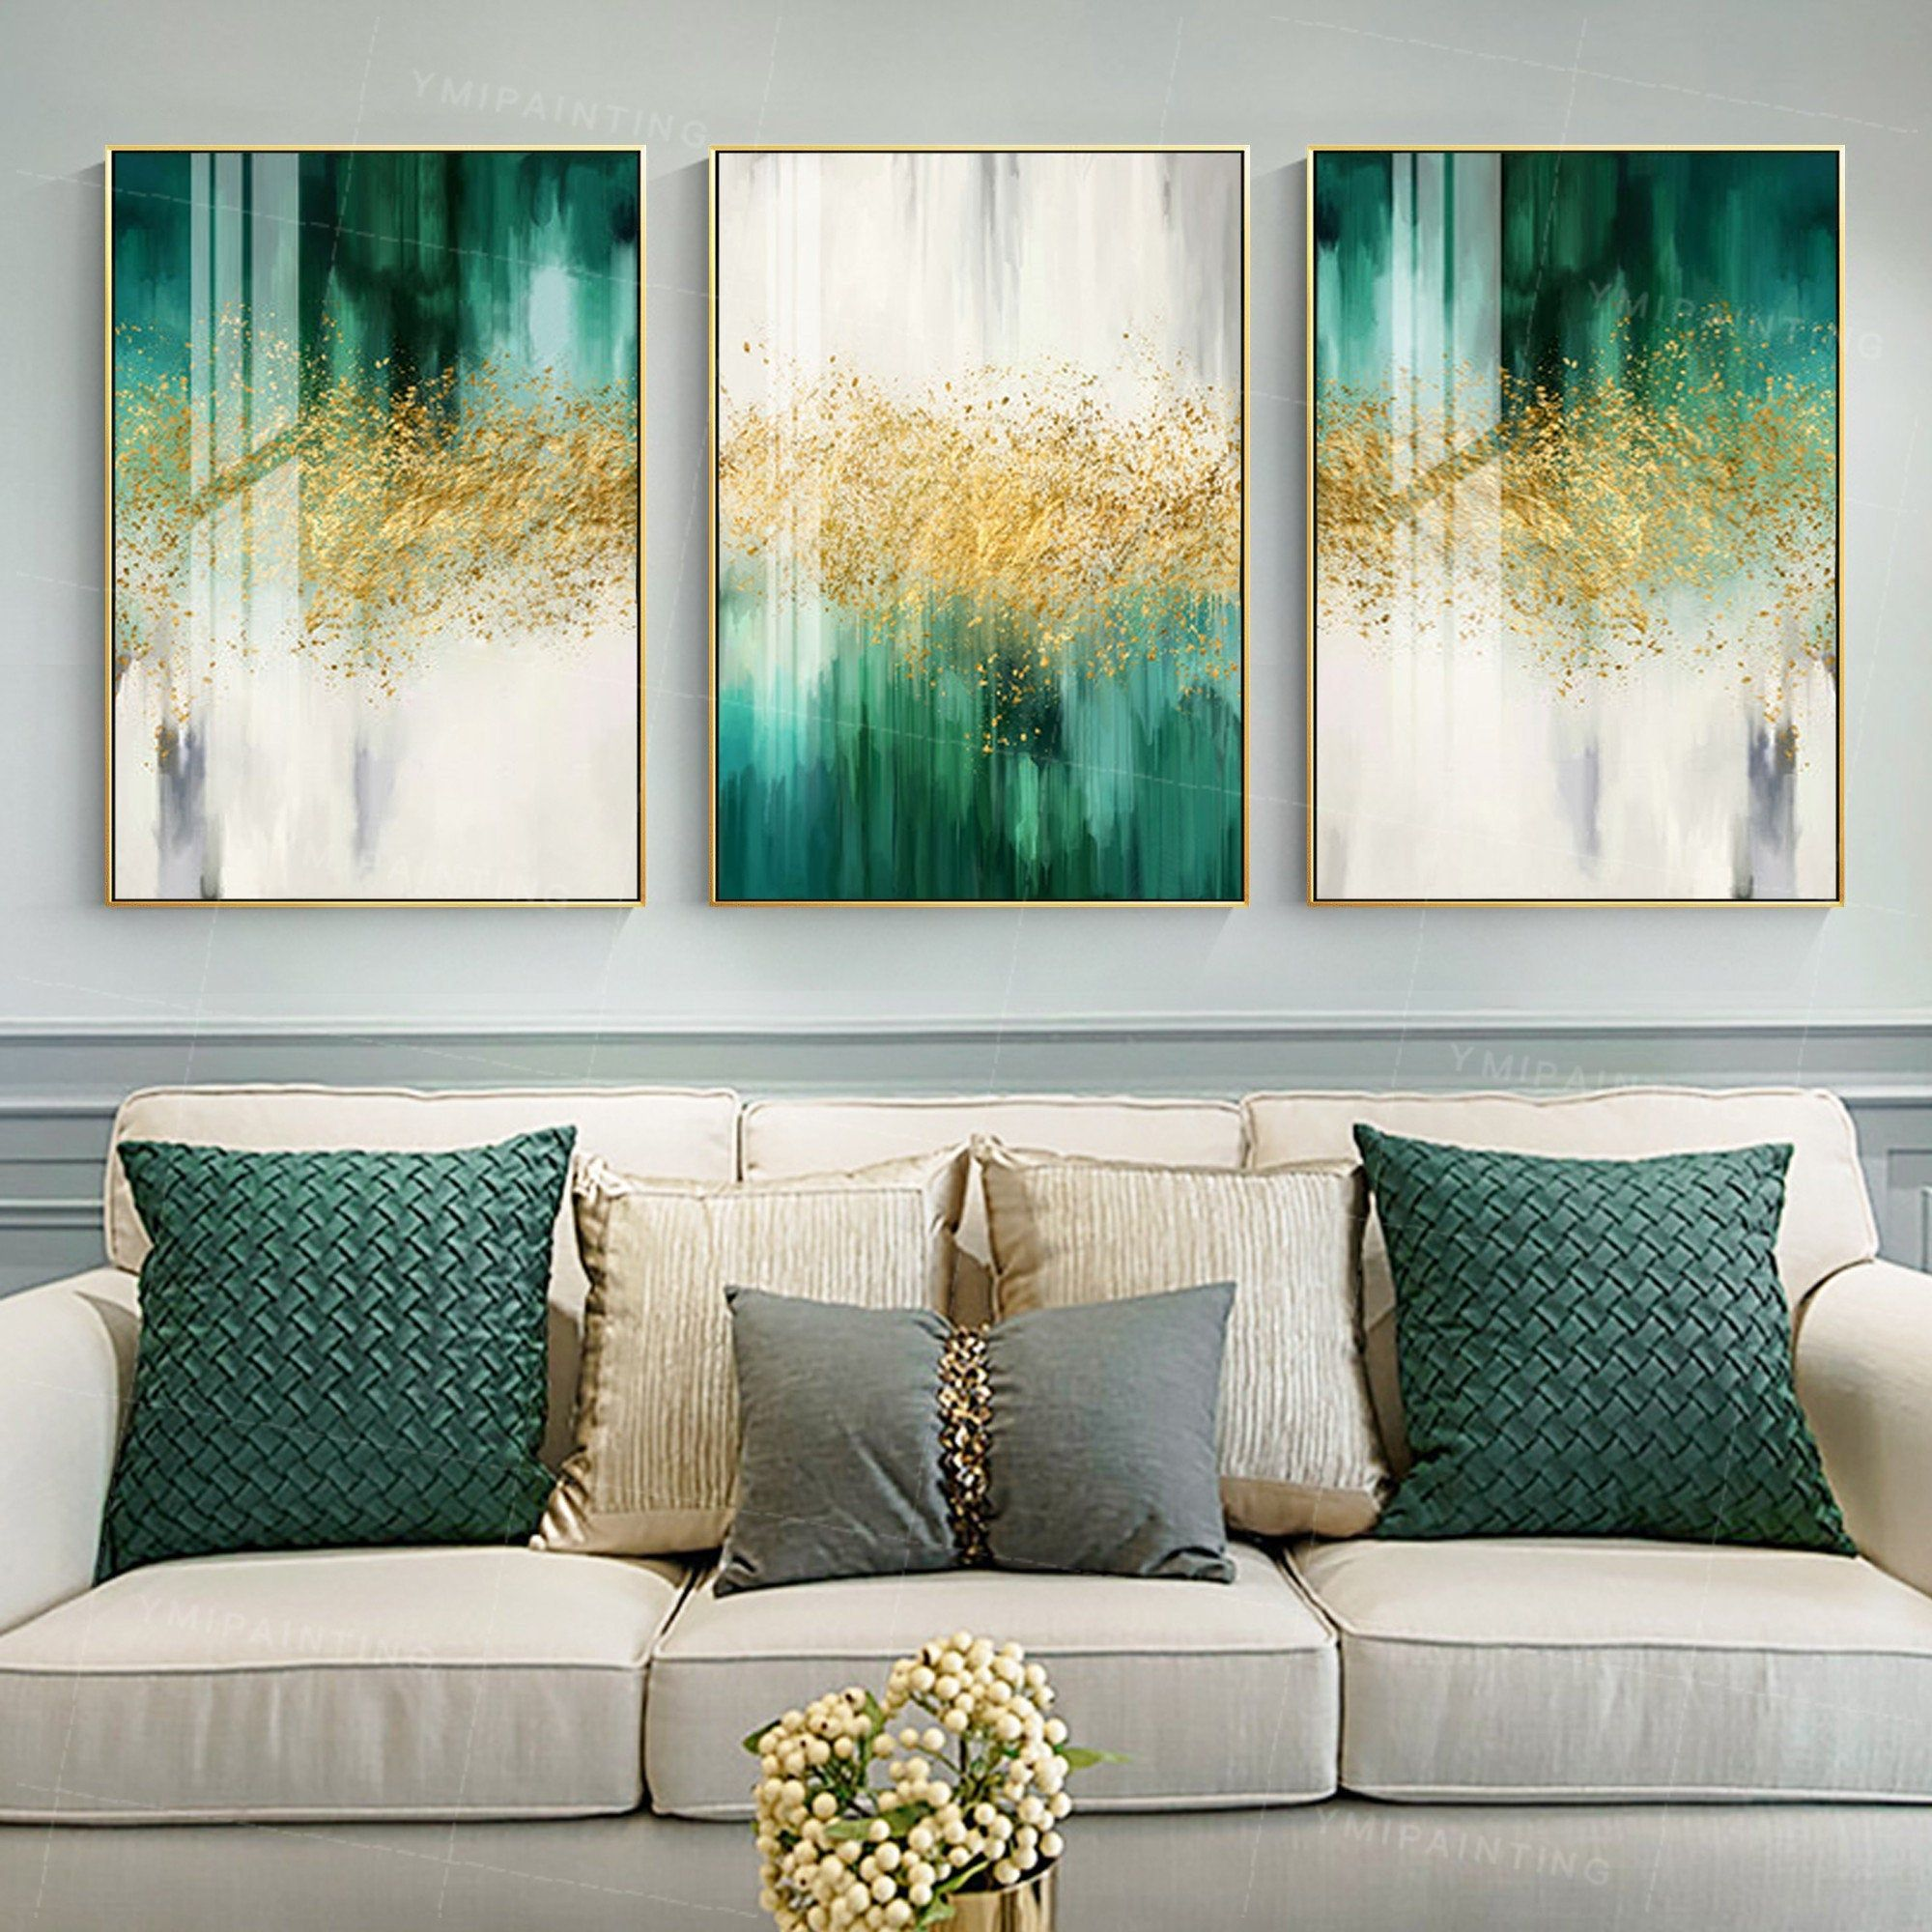 3 Piece Wall Art Gold Art Emerald Green Decor Framed Painting Etsy Green Paintings Green Canvas Art Abstract Art Painting